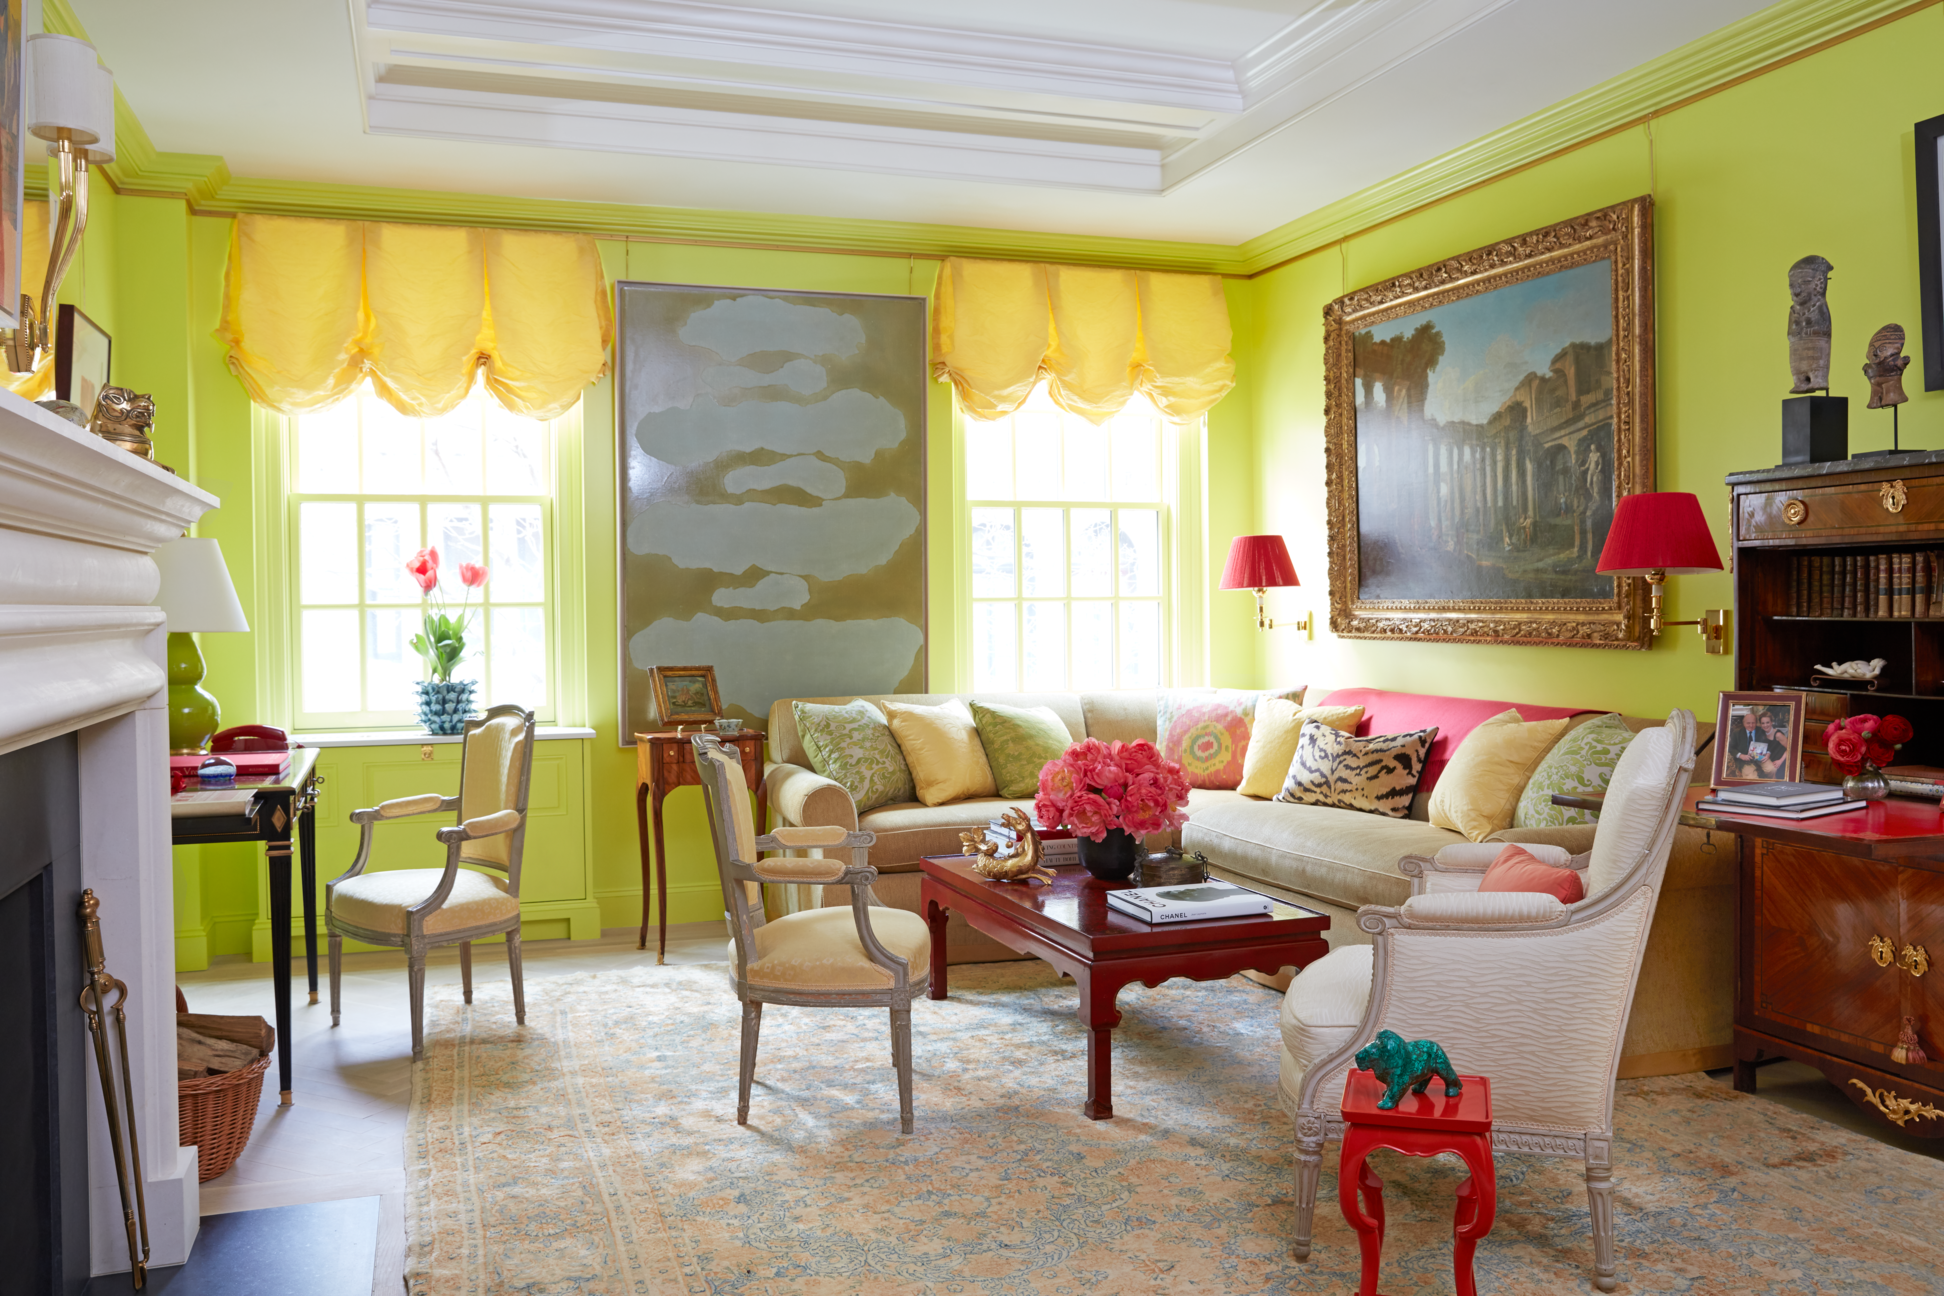 Best Living Room Paint Colors - 16 Designer Paint Colors